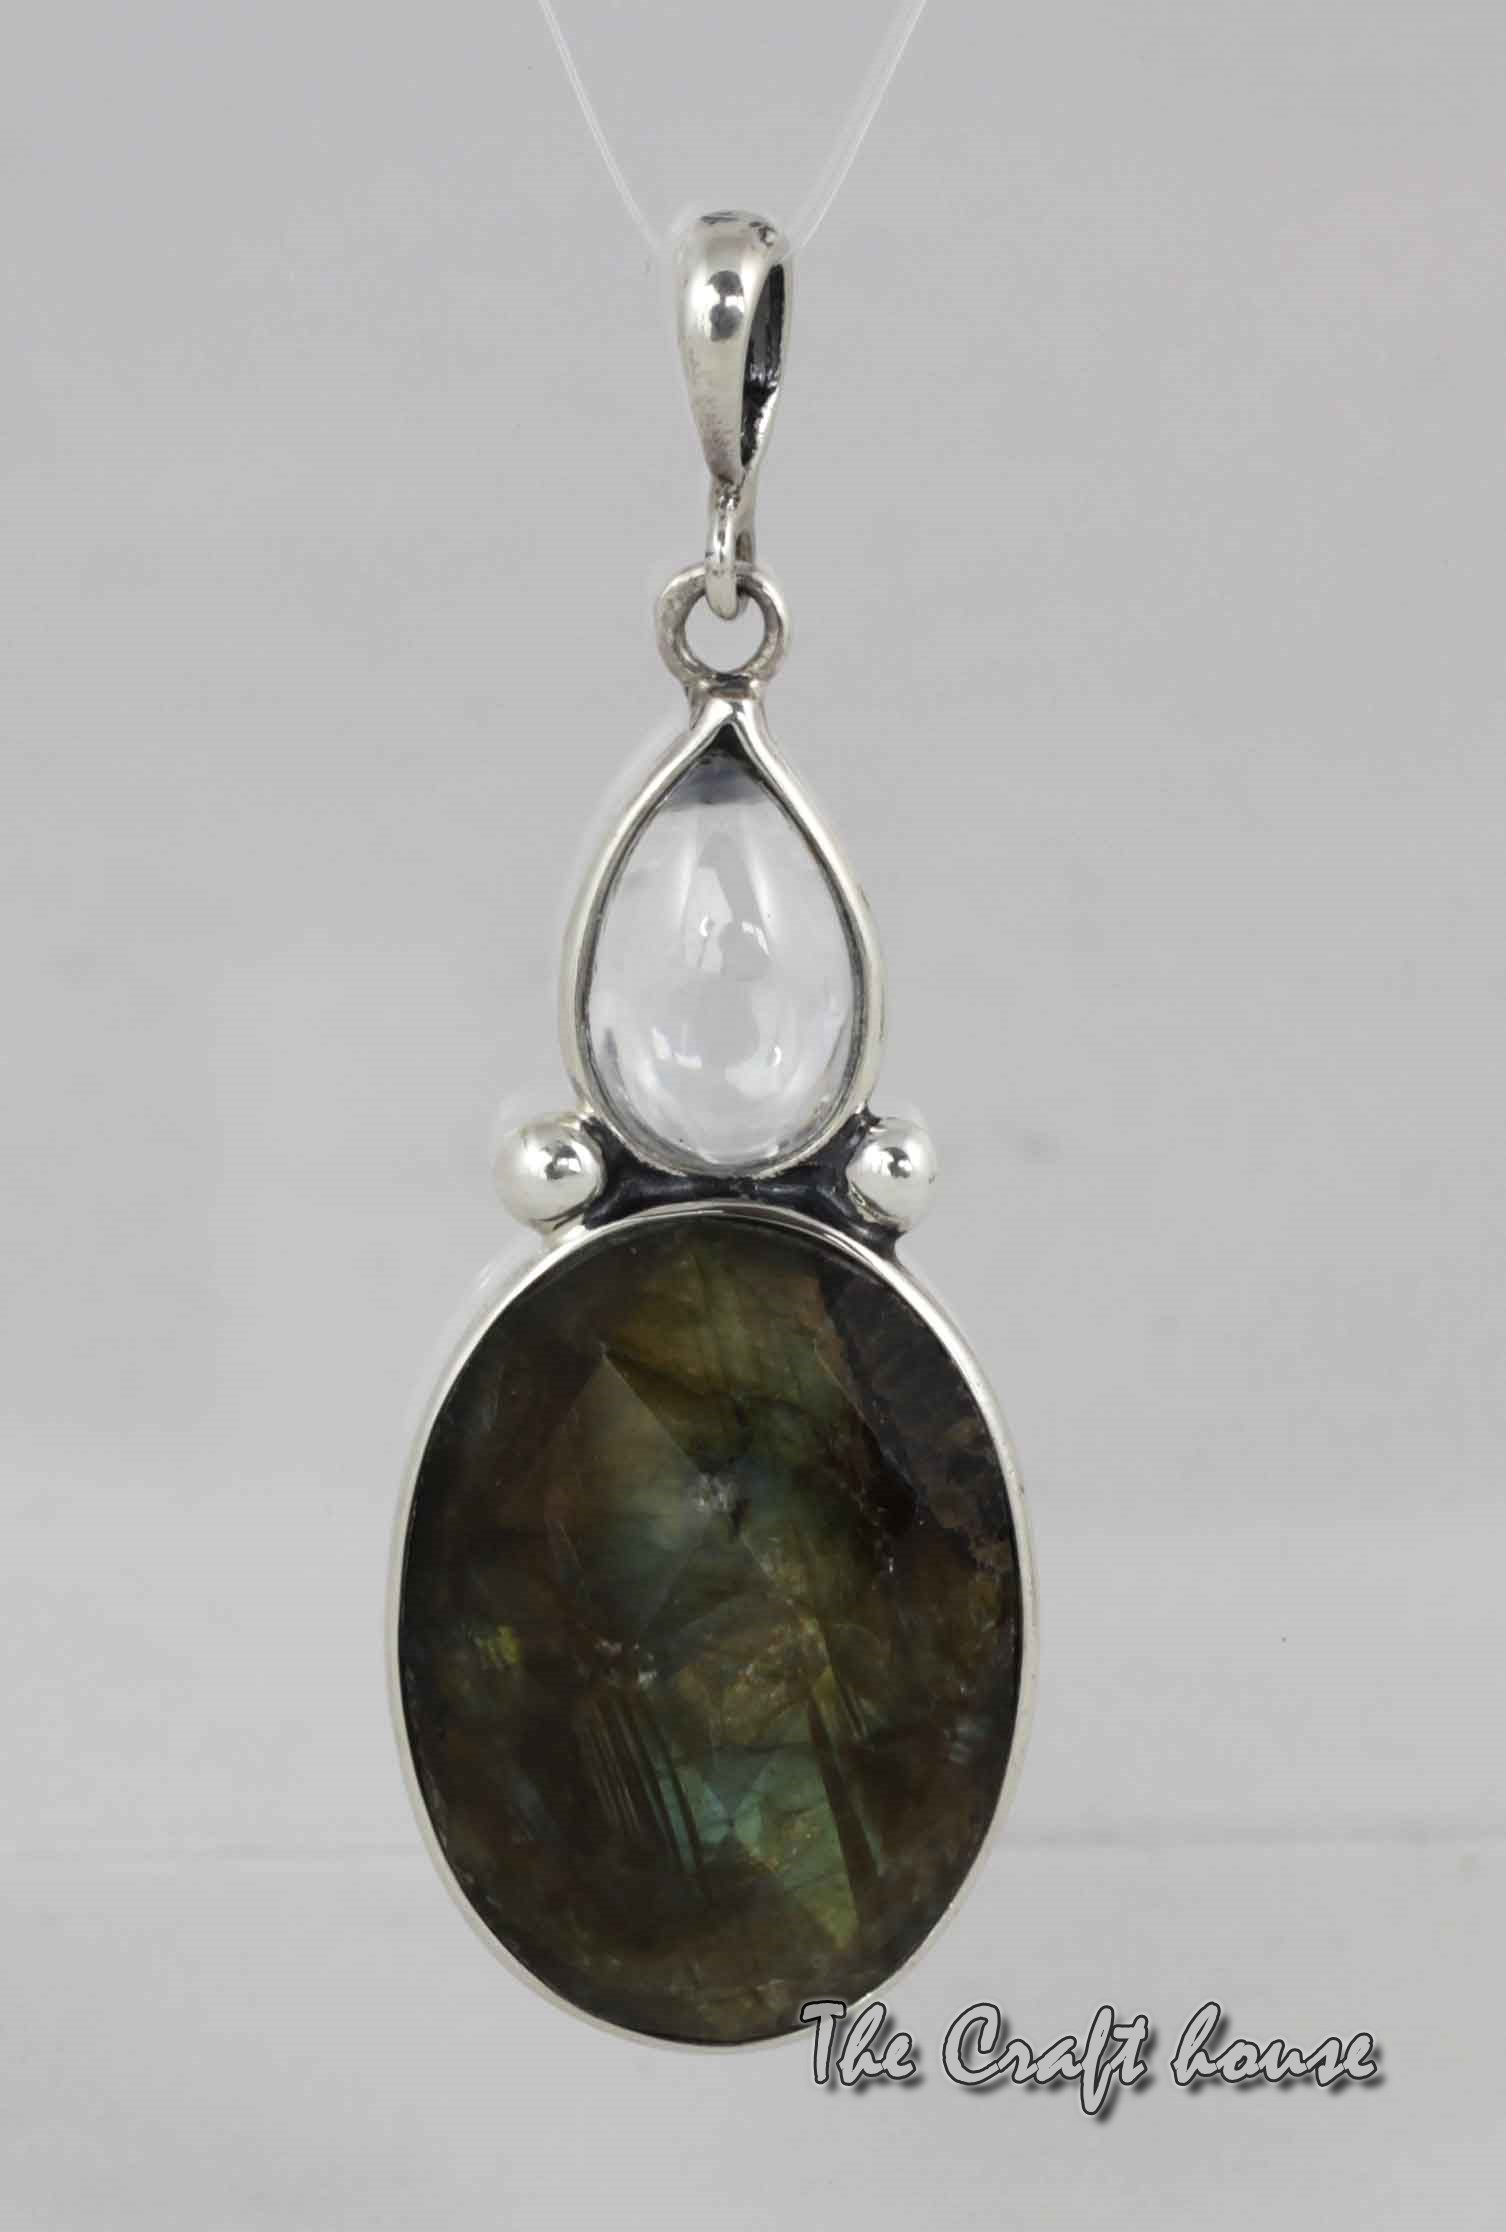 Silver pendant with Labradorite and Rock crystal